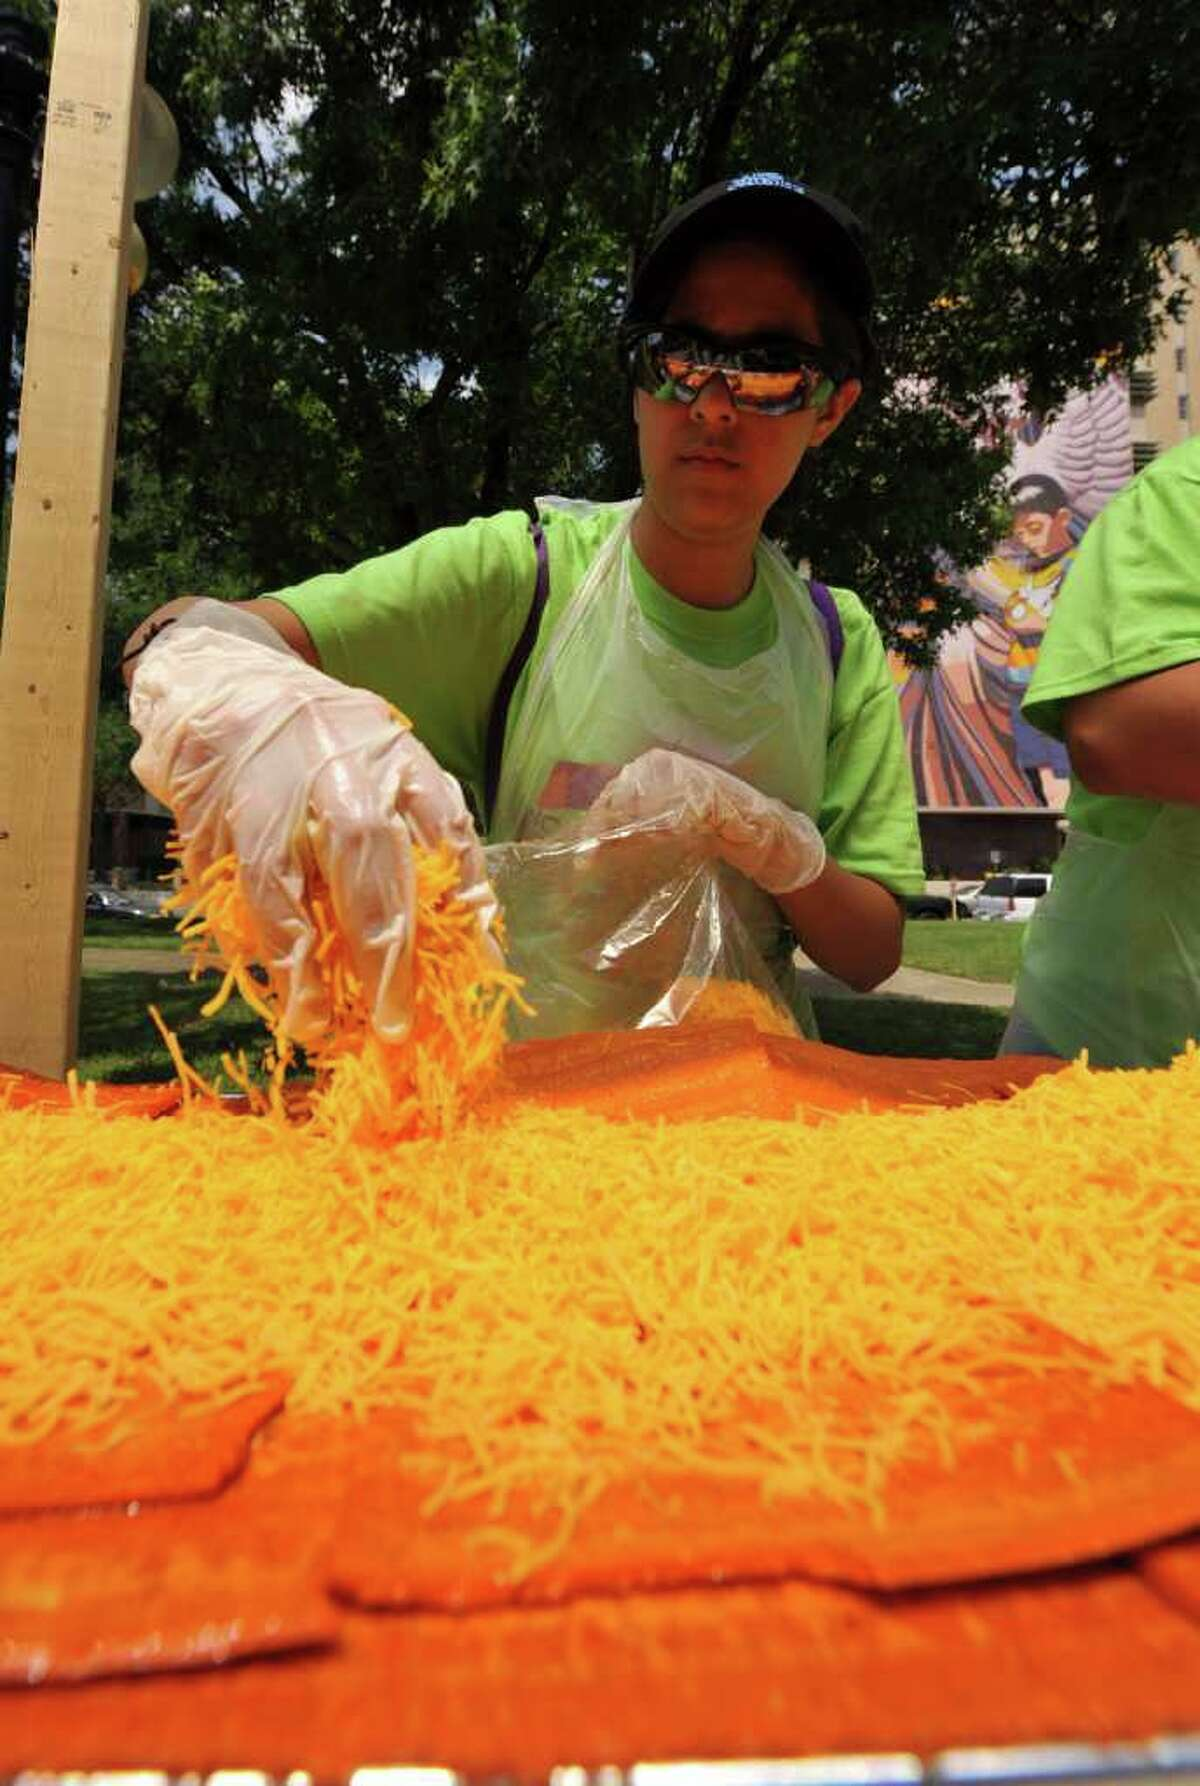 Susie Mitchell layers on some of the 1,500 pounds of Wisconsin Mild Cheddar cheese that made up the 300-foot-long enchilada made in Milam Park on April 9, 2011, as part of a collaboration between 20 local restaurants and the Rey Feo Consejo Foundation.